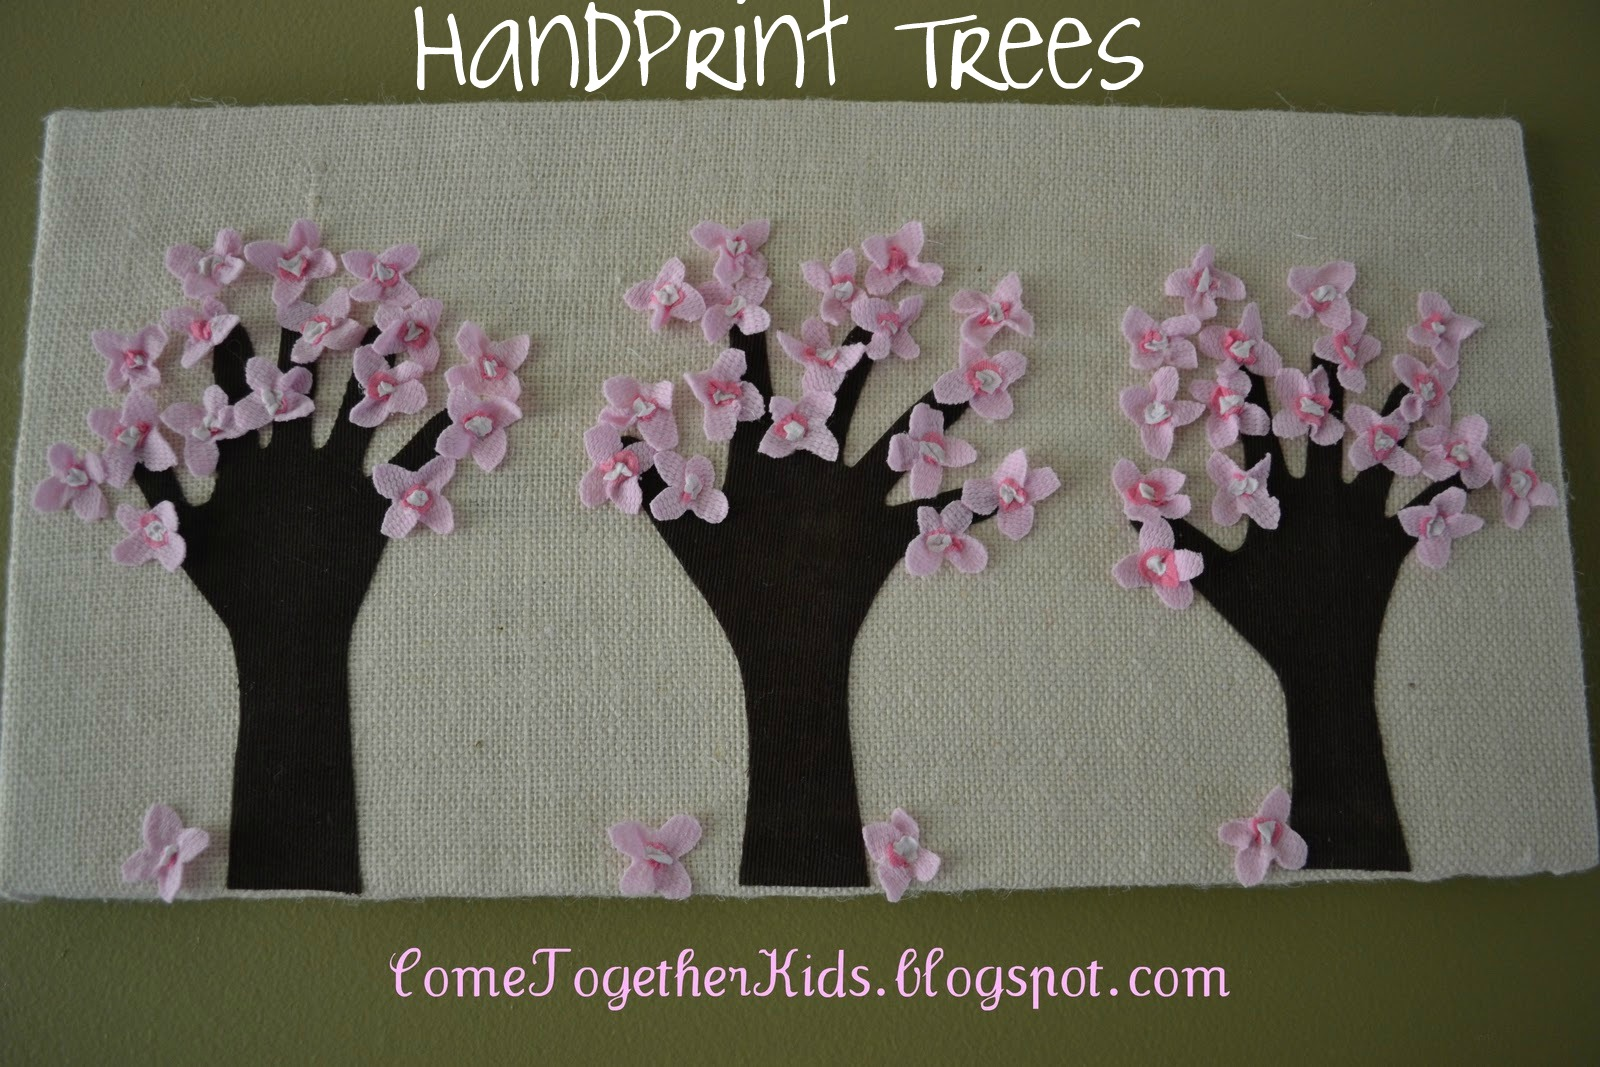 Come together kids handprint trees wrapped canvas